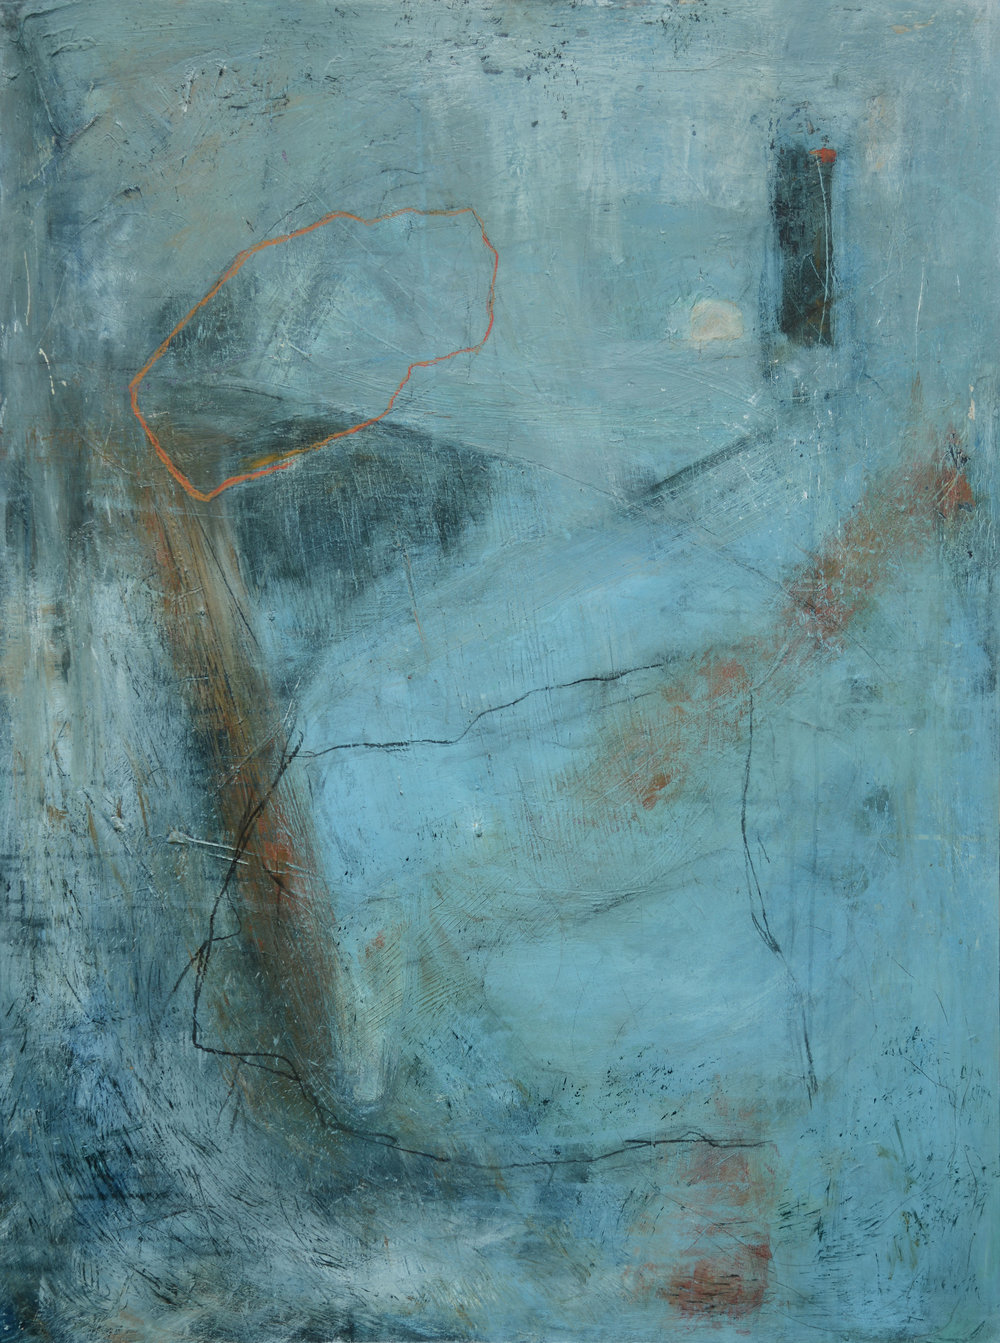 David Mankin 'Searching for the Real' 90 x 122 cm acrylic & mixed media on wood panel SOLD